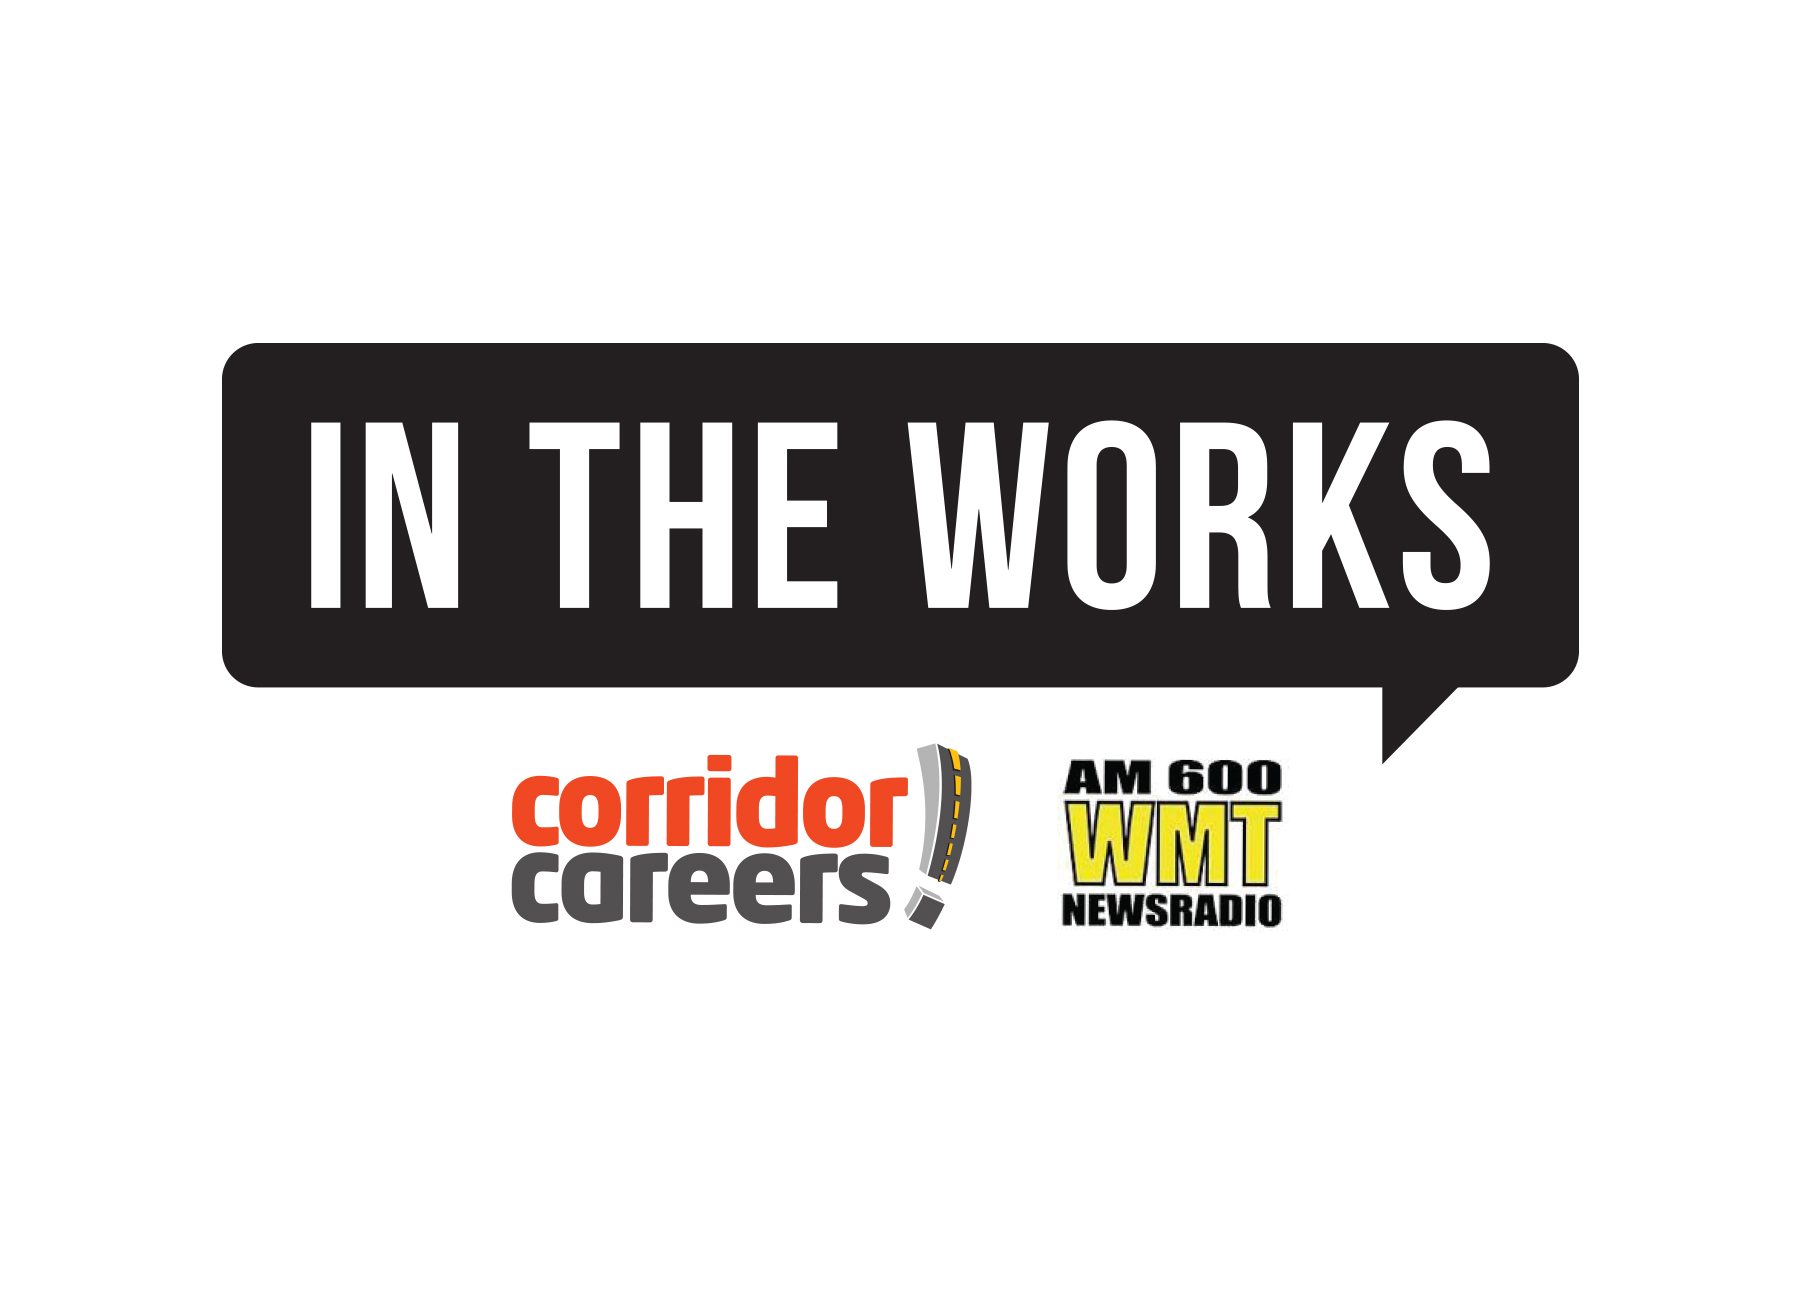 In The Works Radio Segment with Corridor Careers AM600 WMT Newsradio